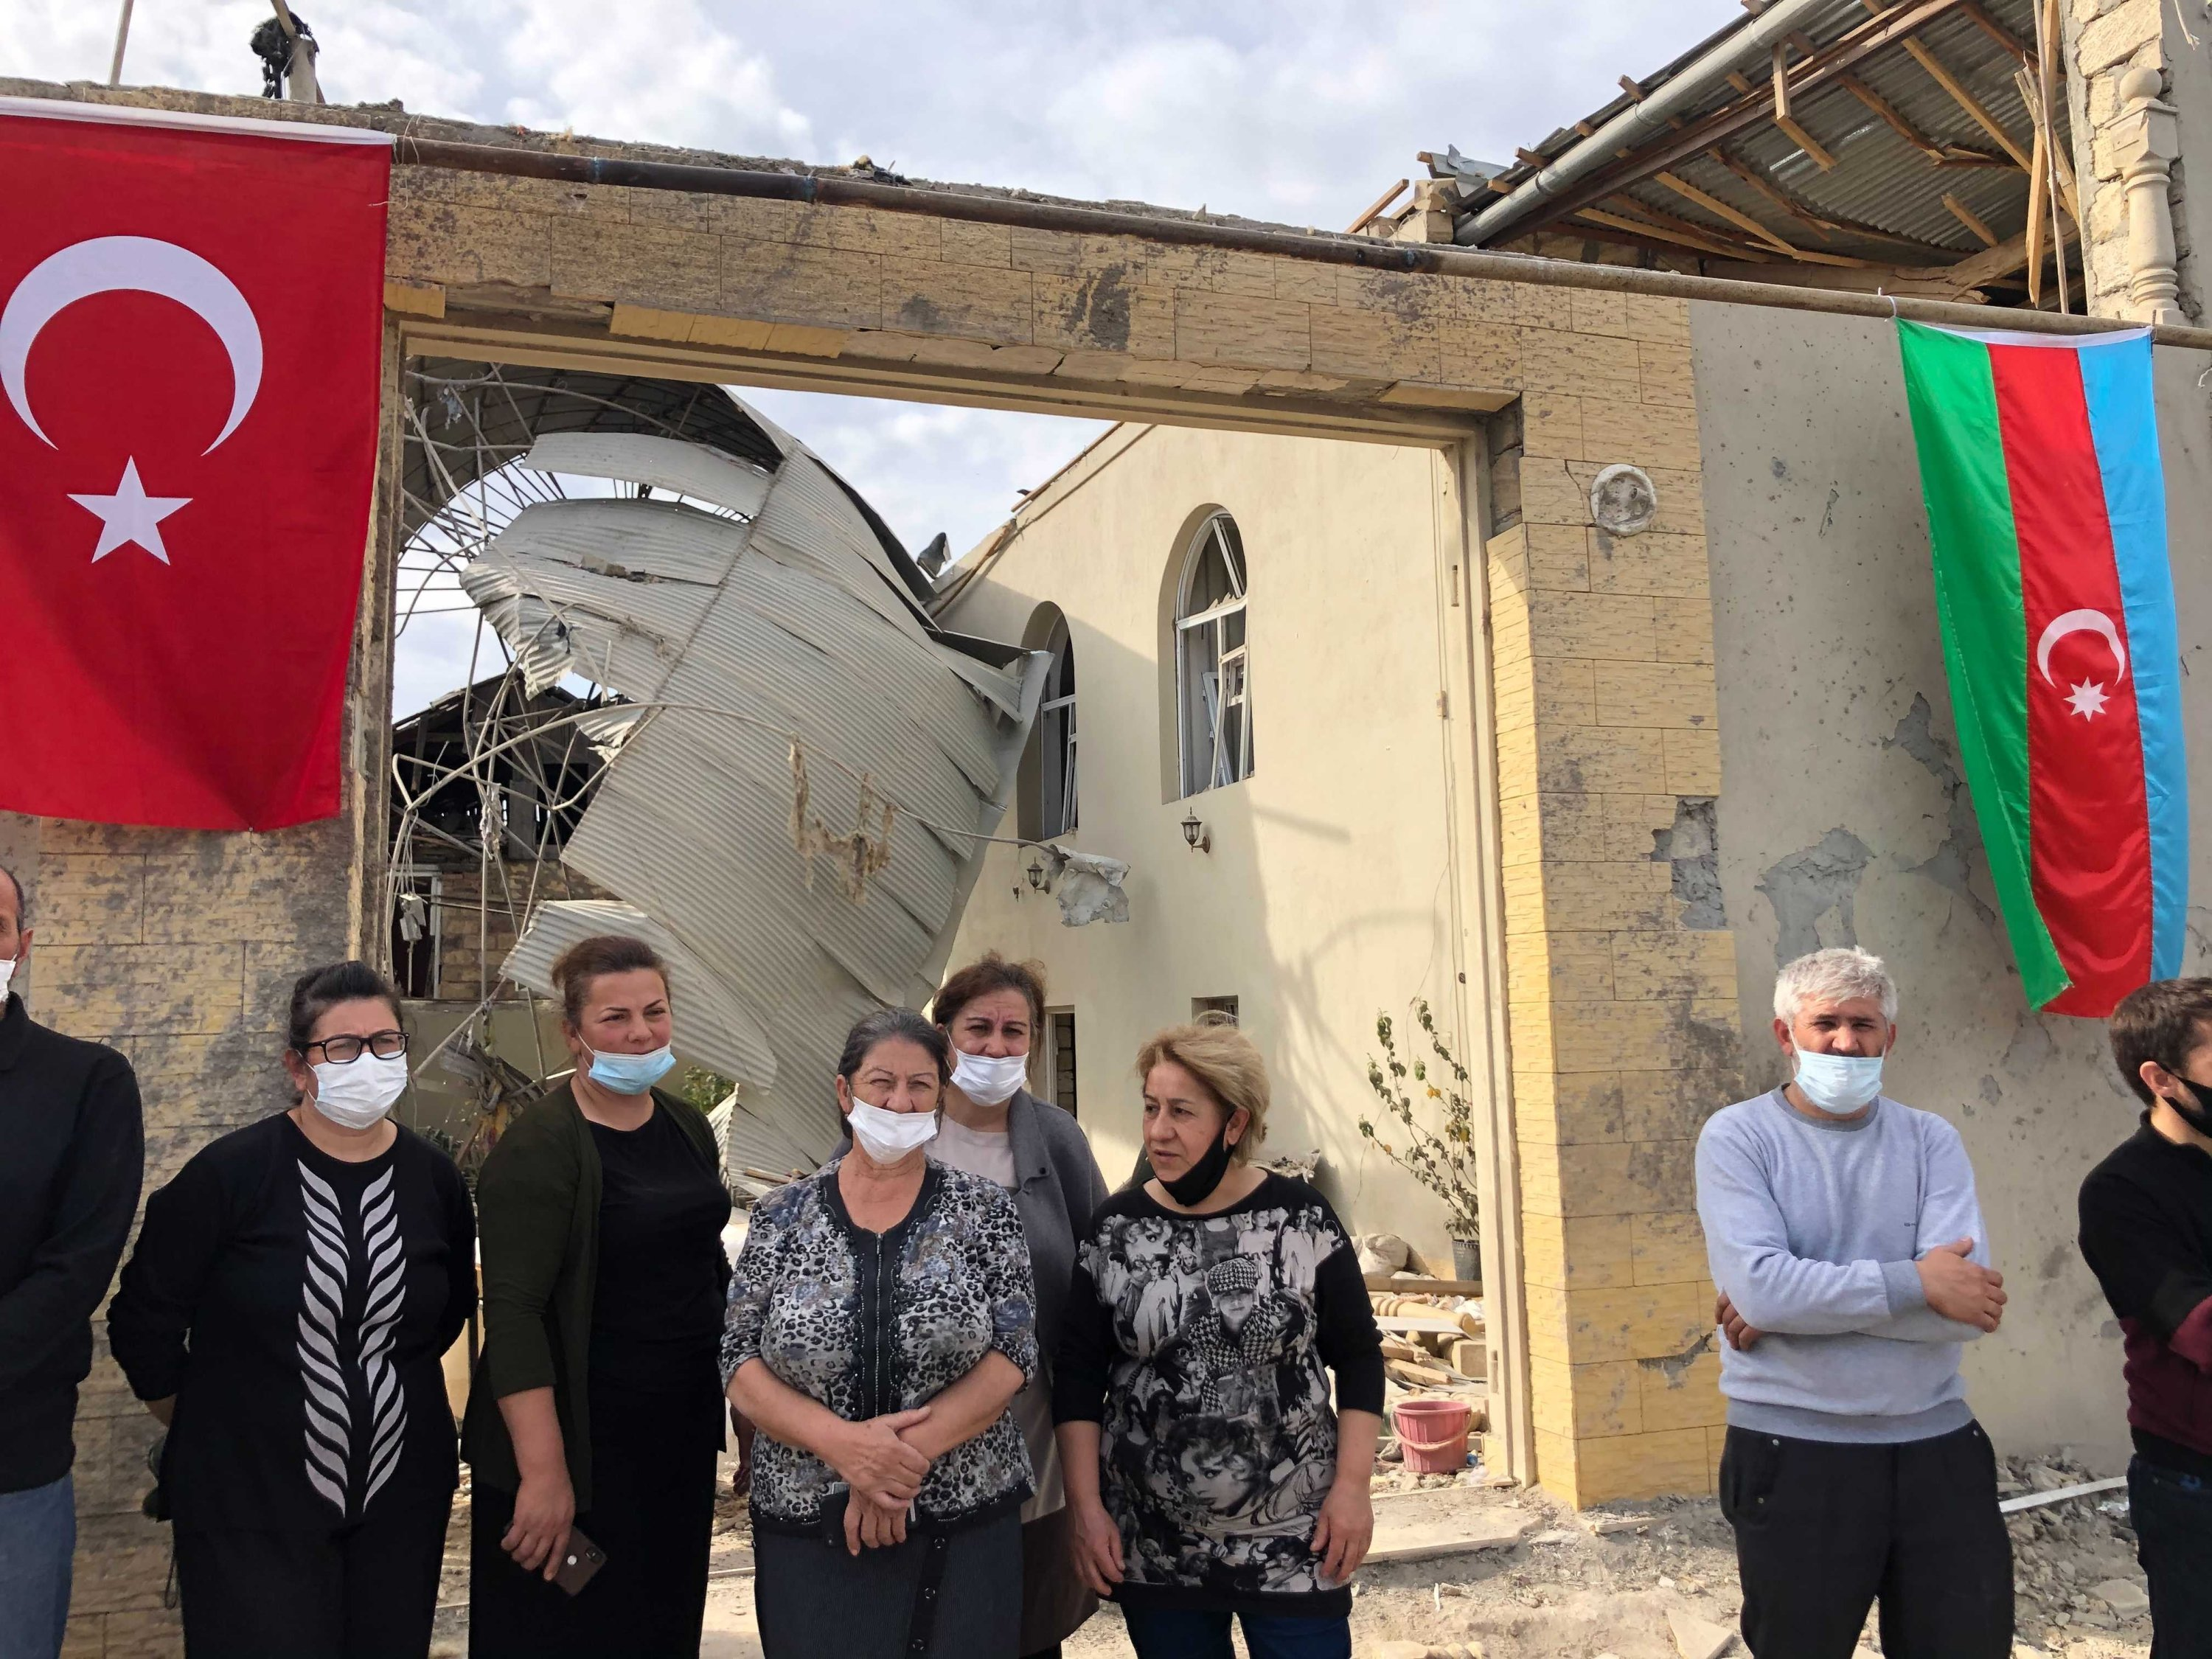 Locals of Ganja, Zemine Caferova, Rubabe Caferova and Ilhame Abbasova, can be seen in this photo after Armenian missiles attacked the city, Oct. 20, 2020. (Photo by Daily Sabah)